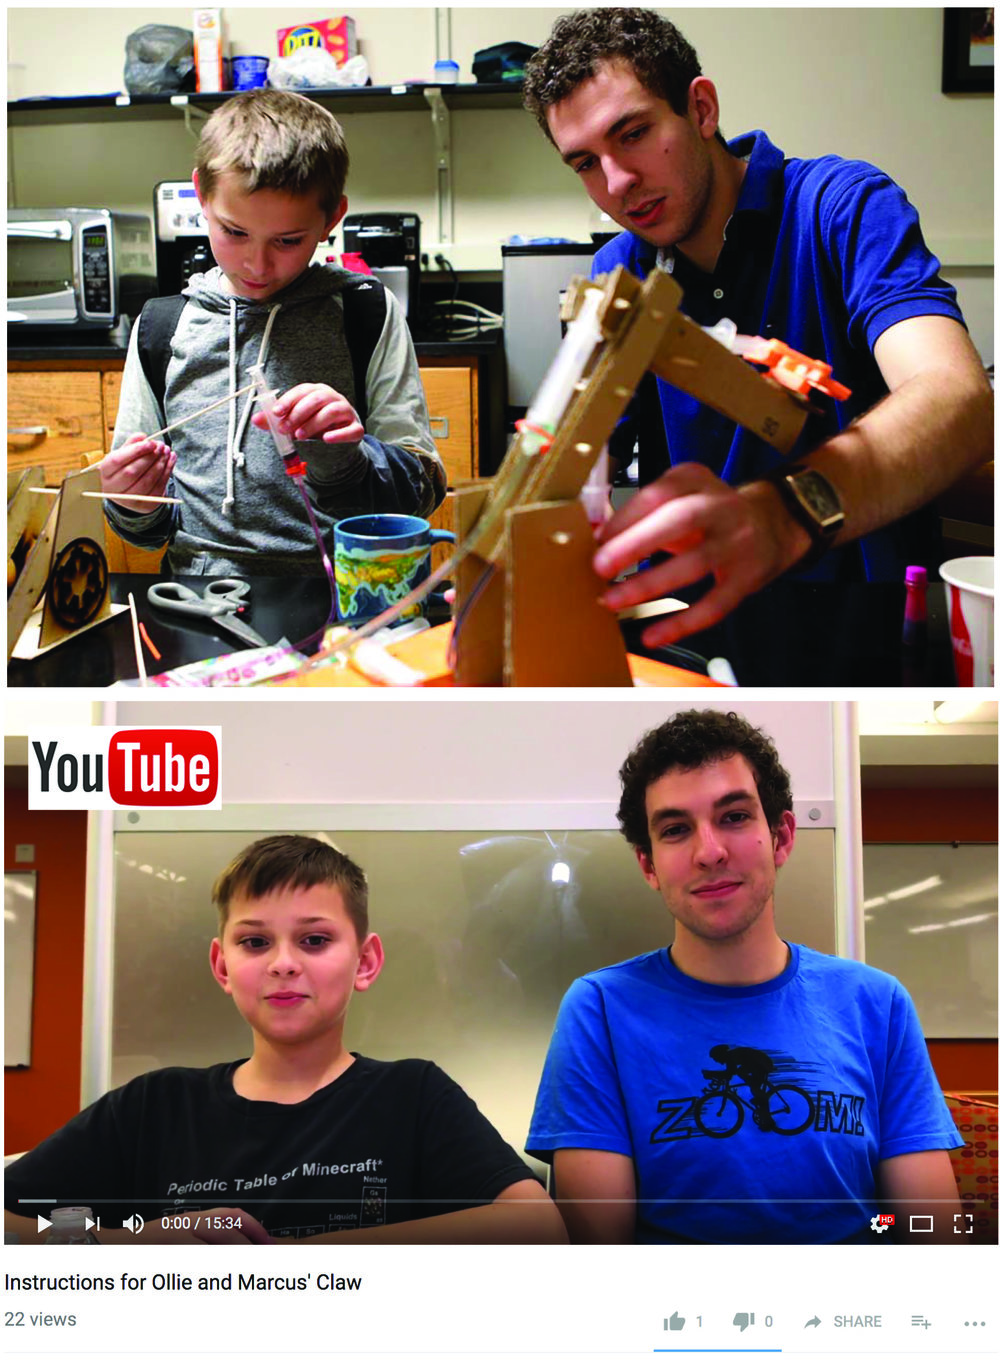 Marcus & Ollie making prototypes of the hydraulic claw and providing assembly instructions in a YouTube video